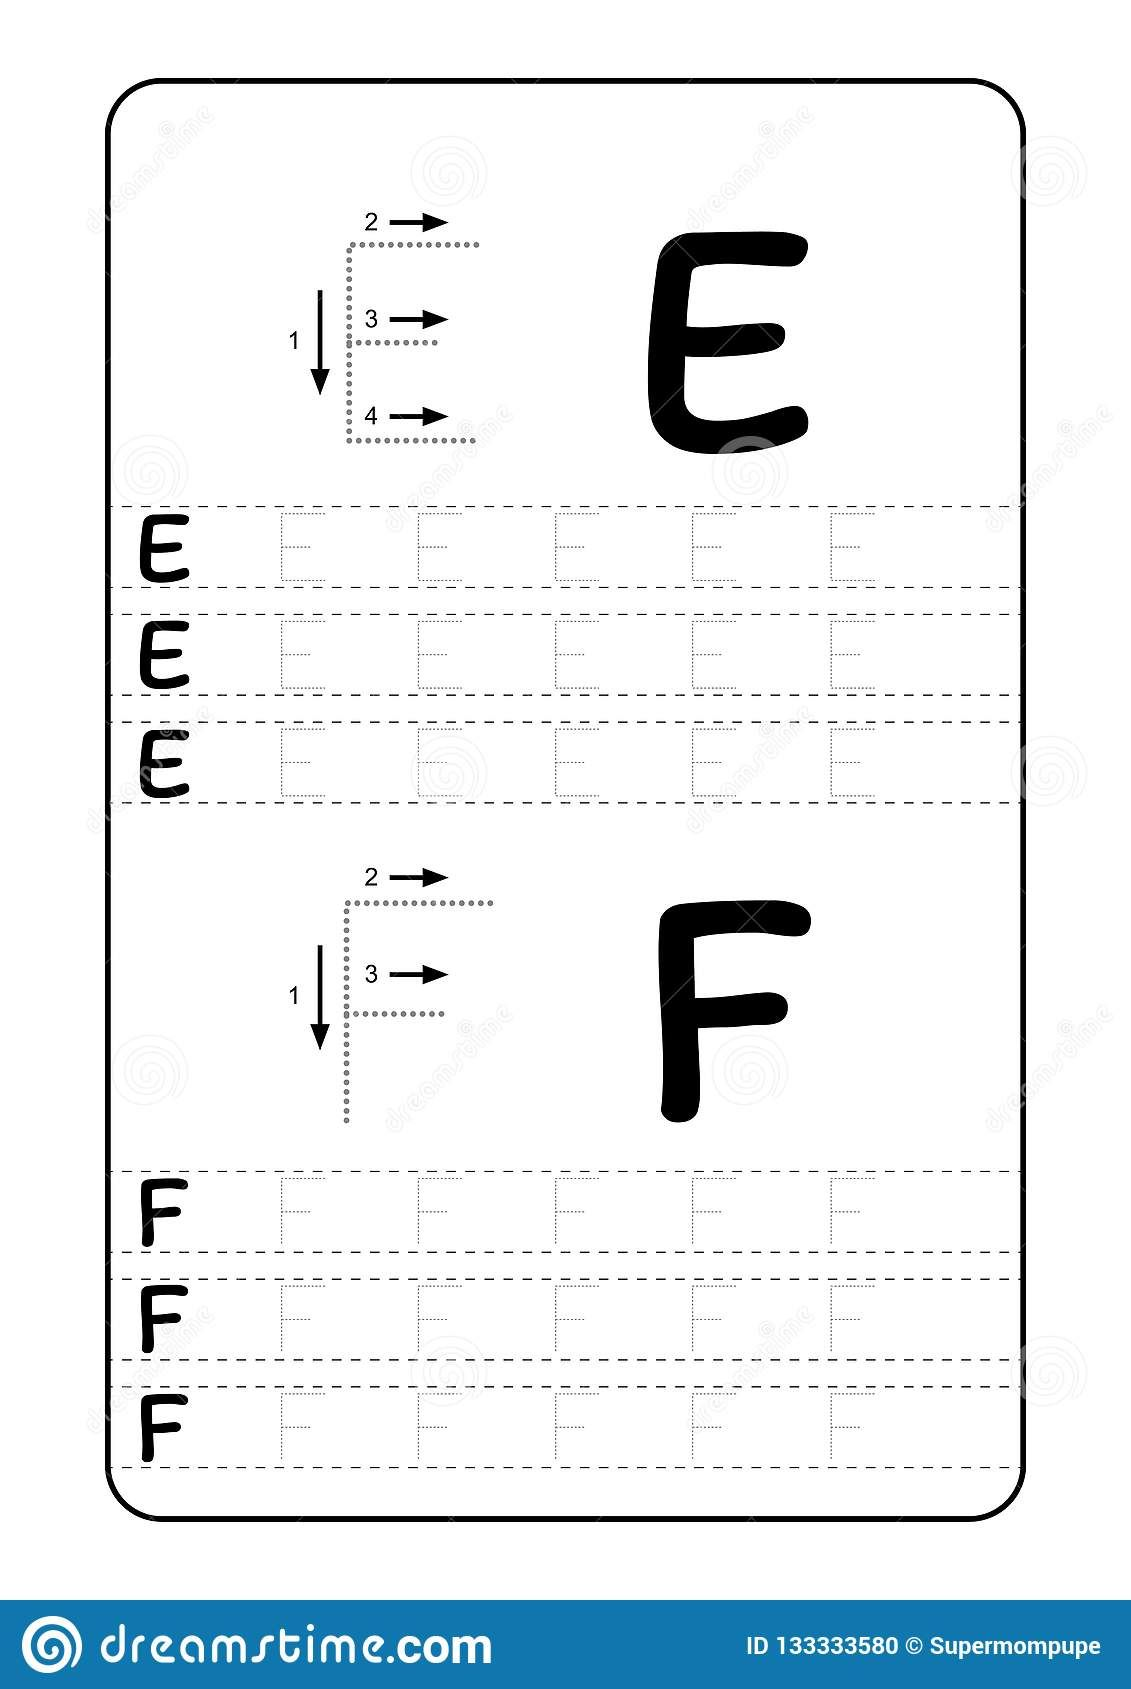 Abc Alphabet Letters Tracing Worksheet With Alphabet Letters Basic Writing Practice For Kindergarten Abc Tracing Letter Tracing Worksheets Tracing Worksheets [ 1689 x 1131 Pixel ]